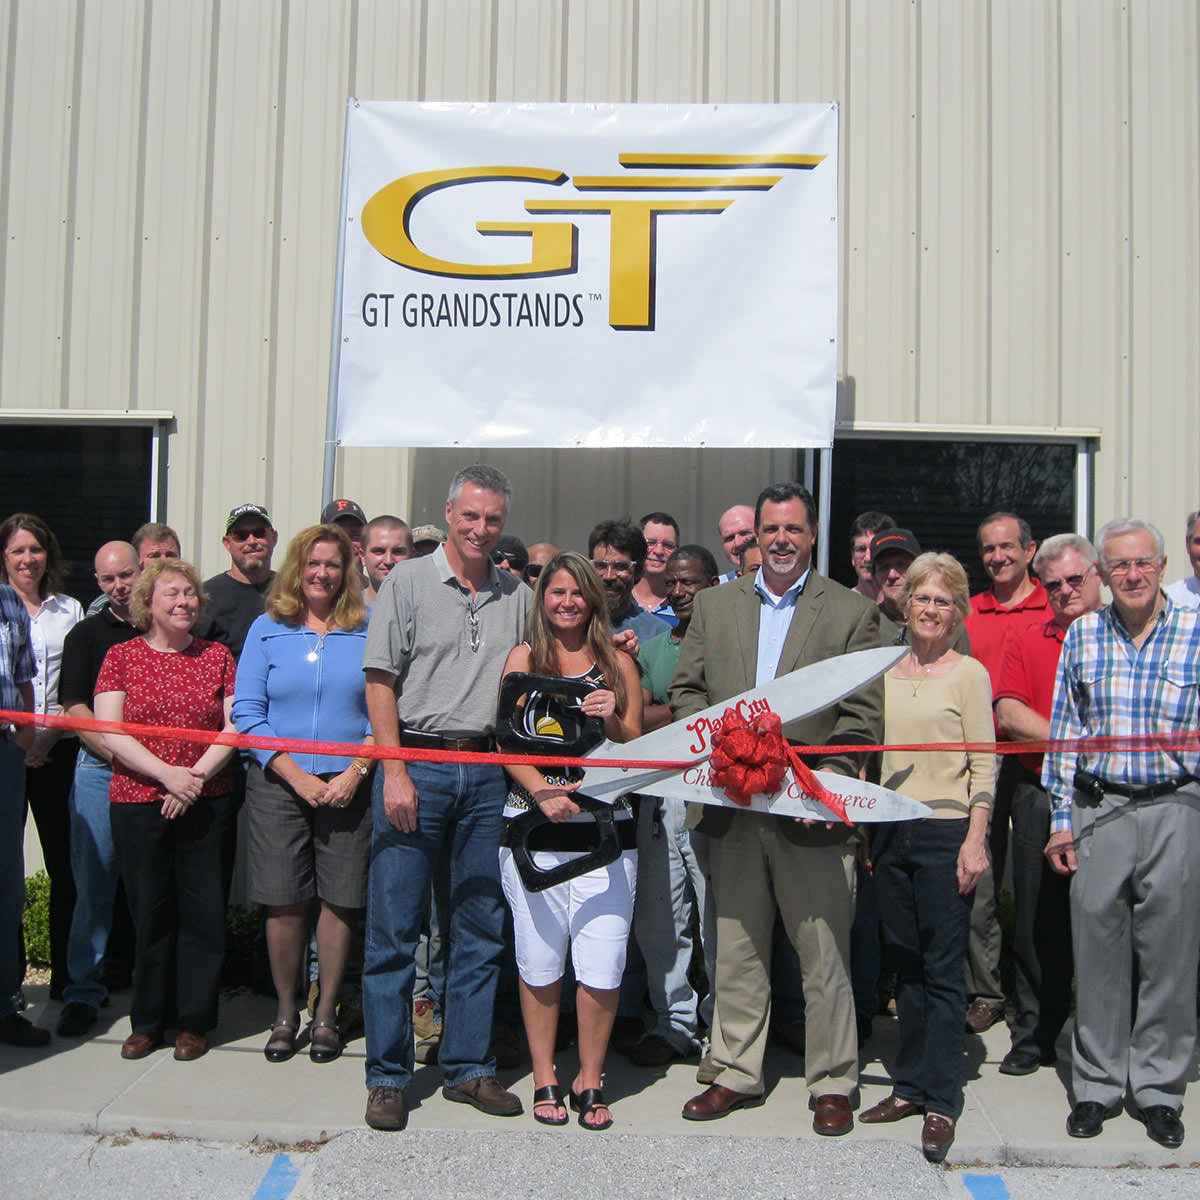 The GT Grandstands ribbon cutting